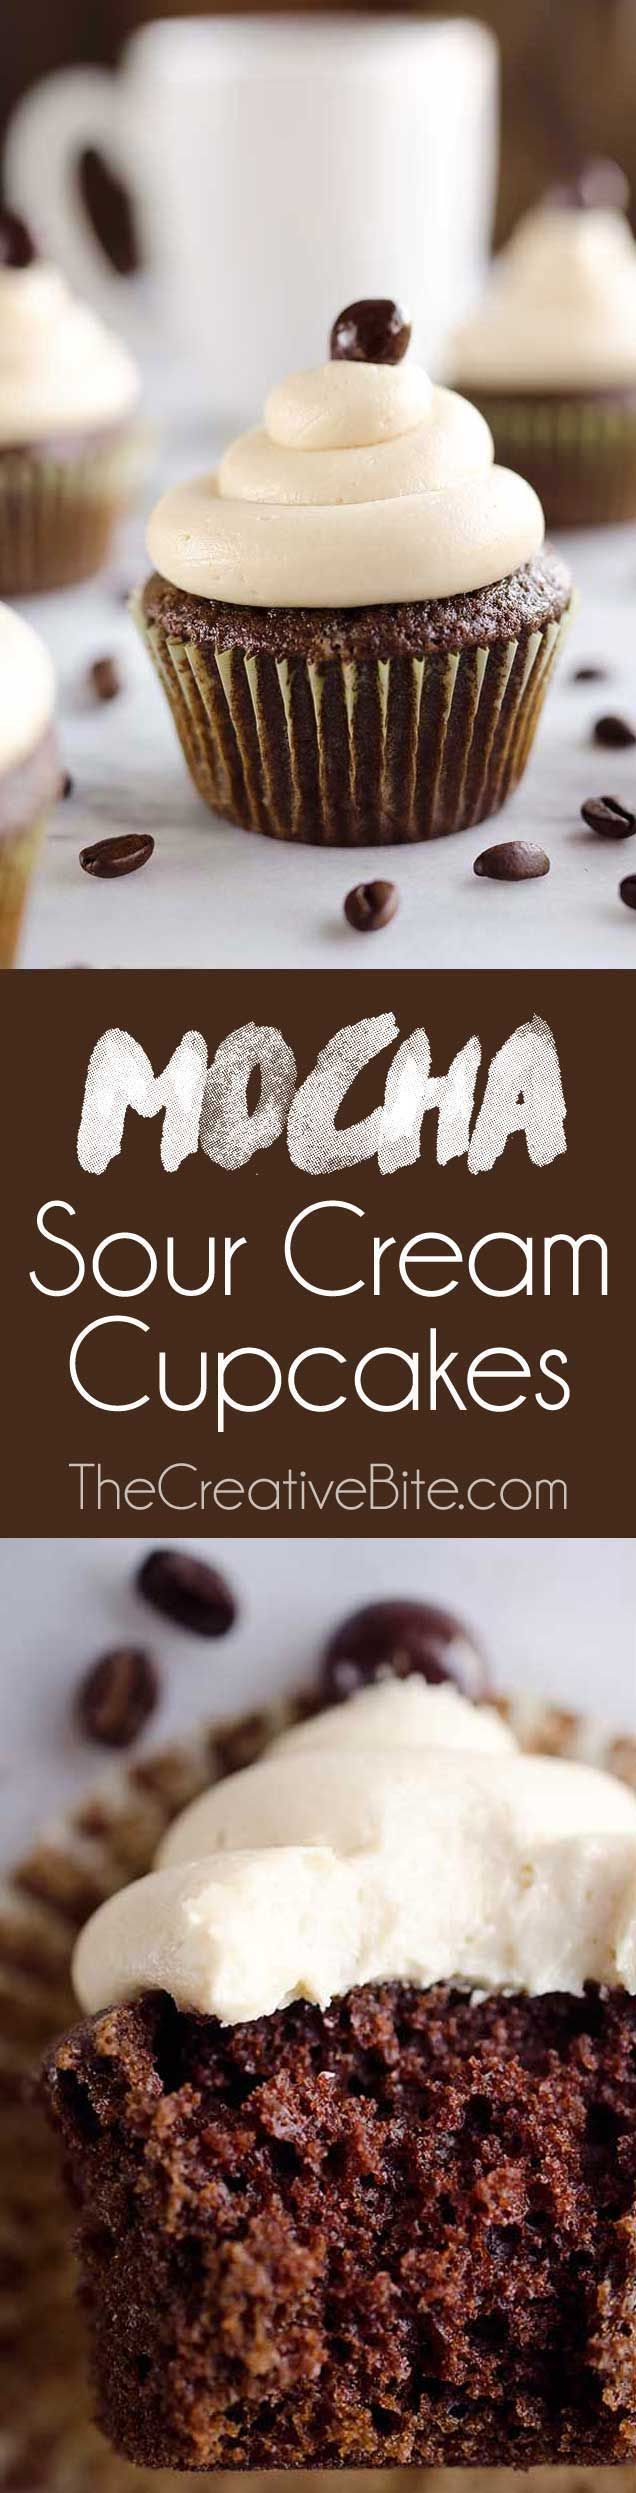 Mocha Sour Cream Cupcakes made with Dunkin' Donuts® Coffee are a rich and decadent chocolate cupcake topped with a mocha buttercream for a sweet treat perfect for any coffee lover! #DunkinToTheRescue